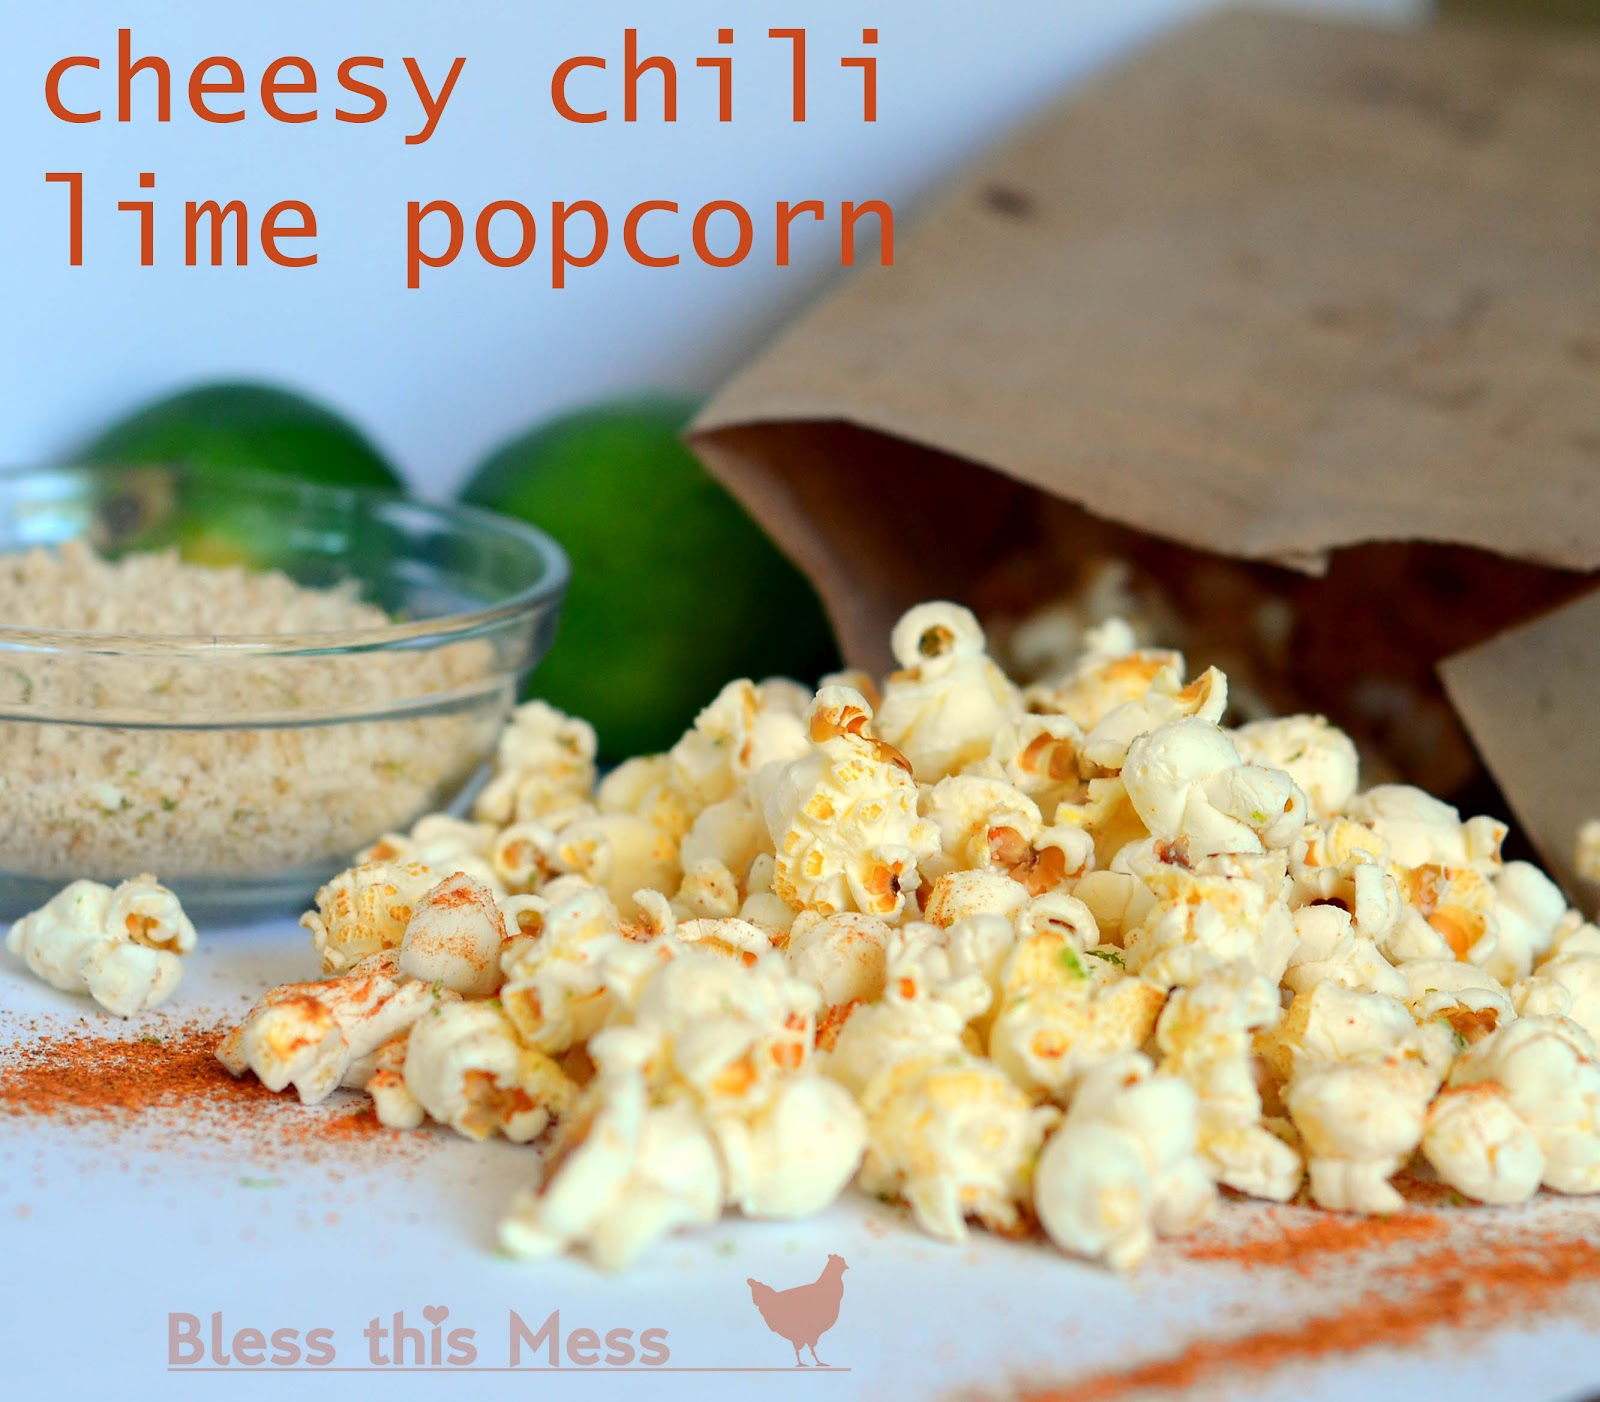 Cheesy Chili Lime Popcorn - Bless This Mess